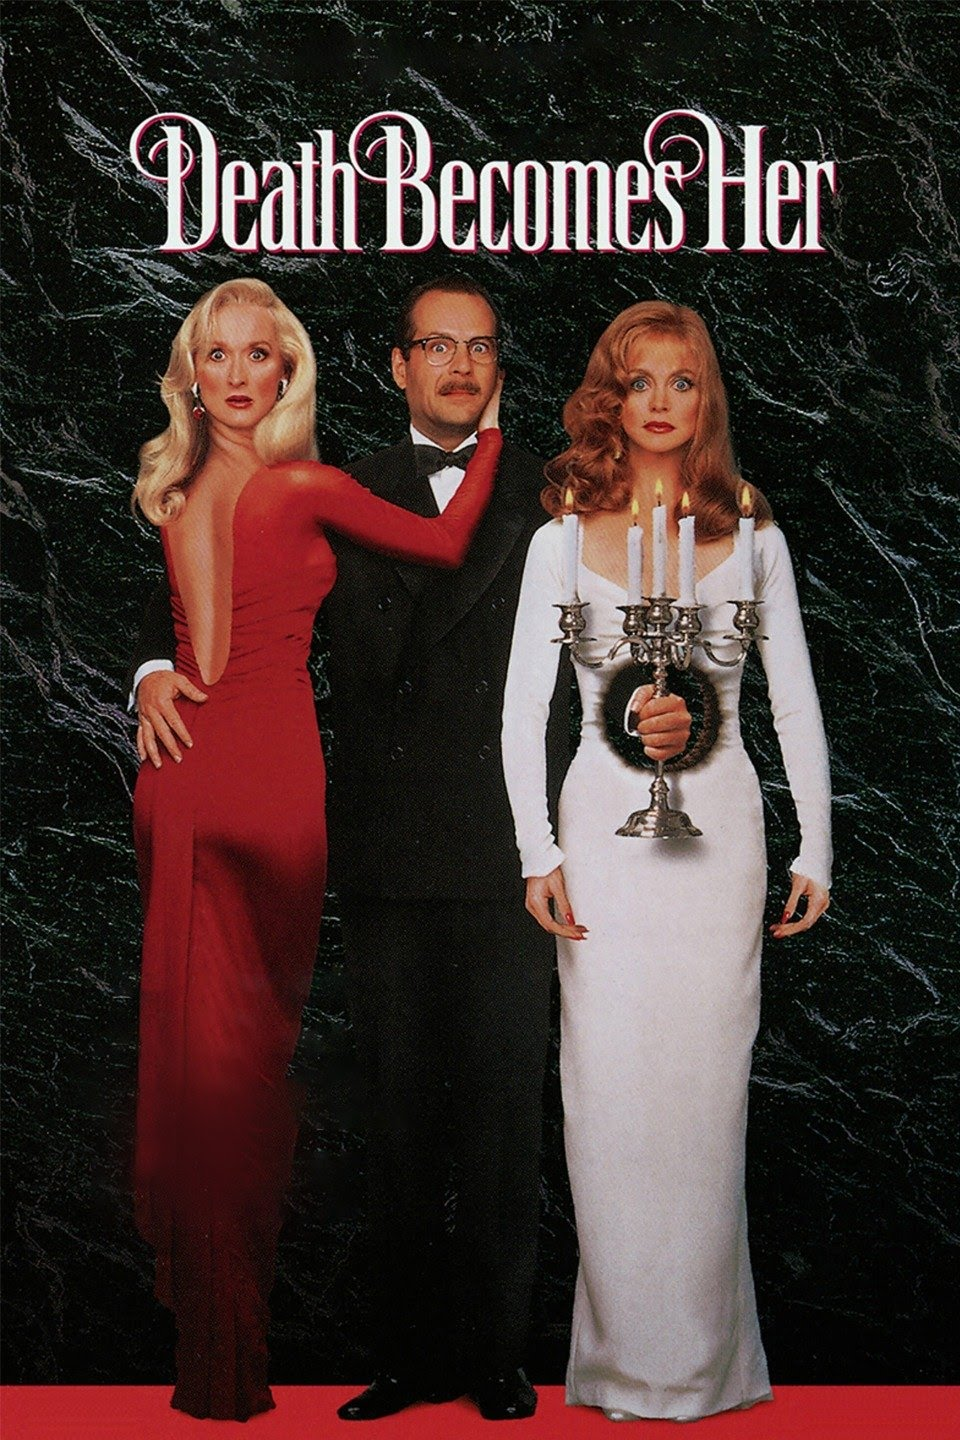 Poster for Philosophy-Drinks-Film (PDF): Death Becomes Her